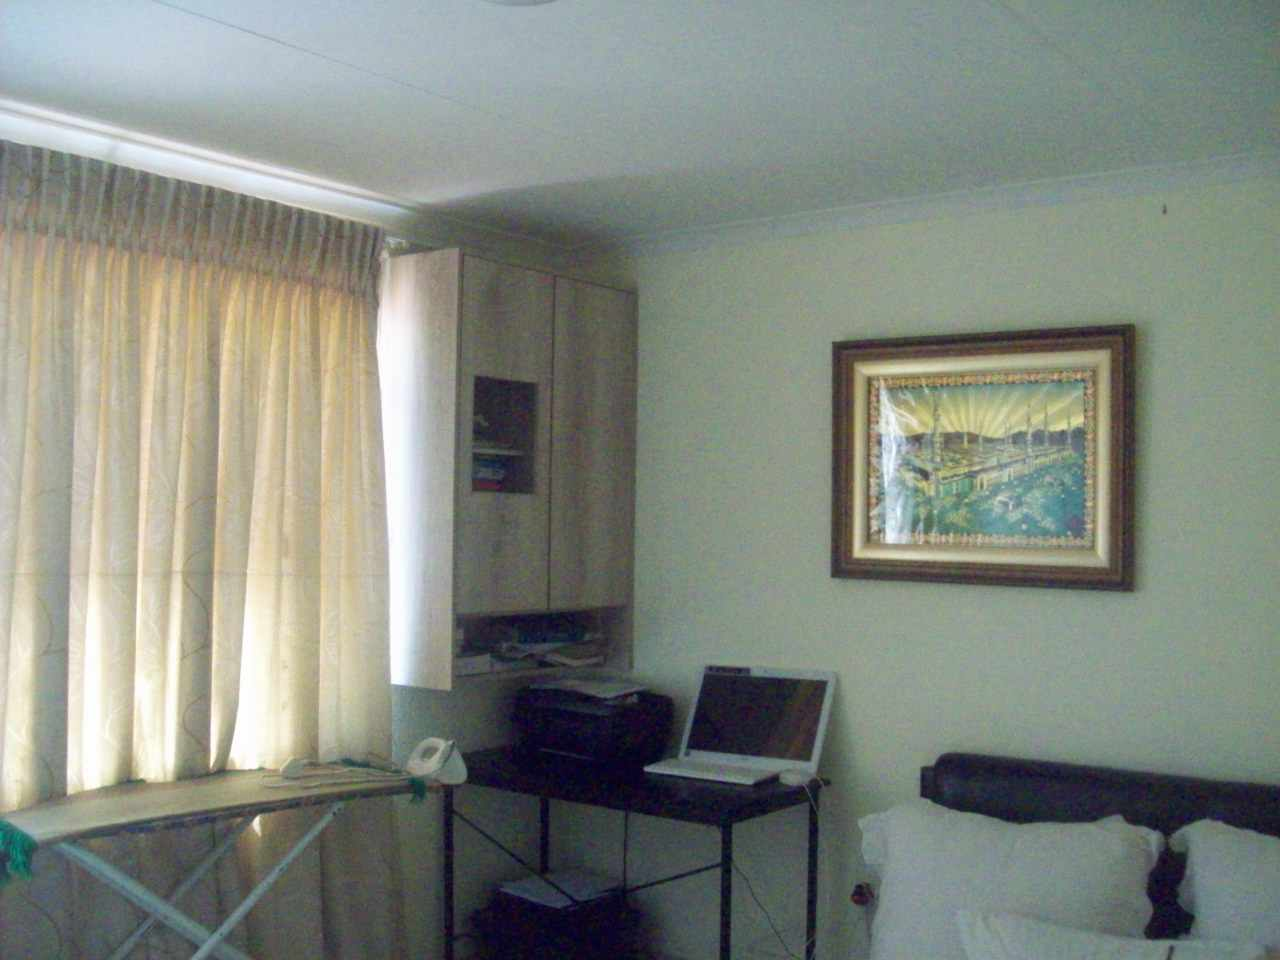 3 Bedroom Townhouse for sale in Bassonia ENT0071278 : photo#42